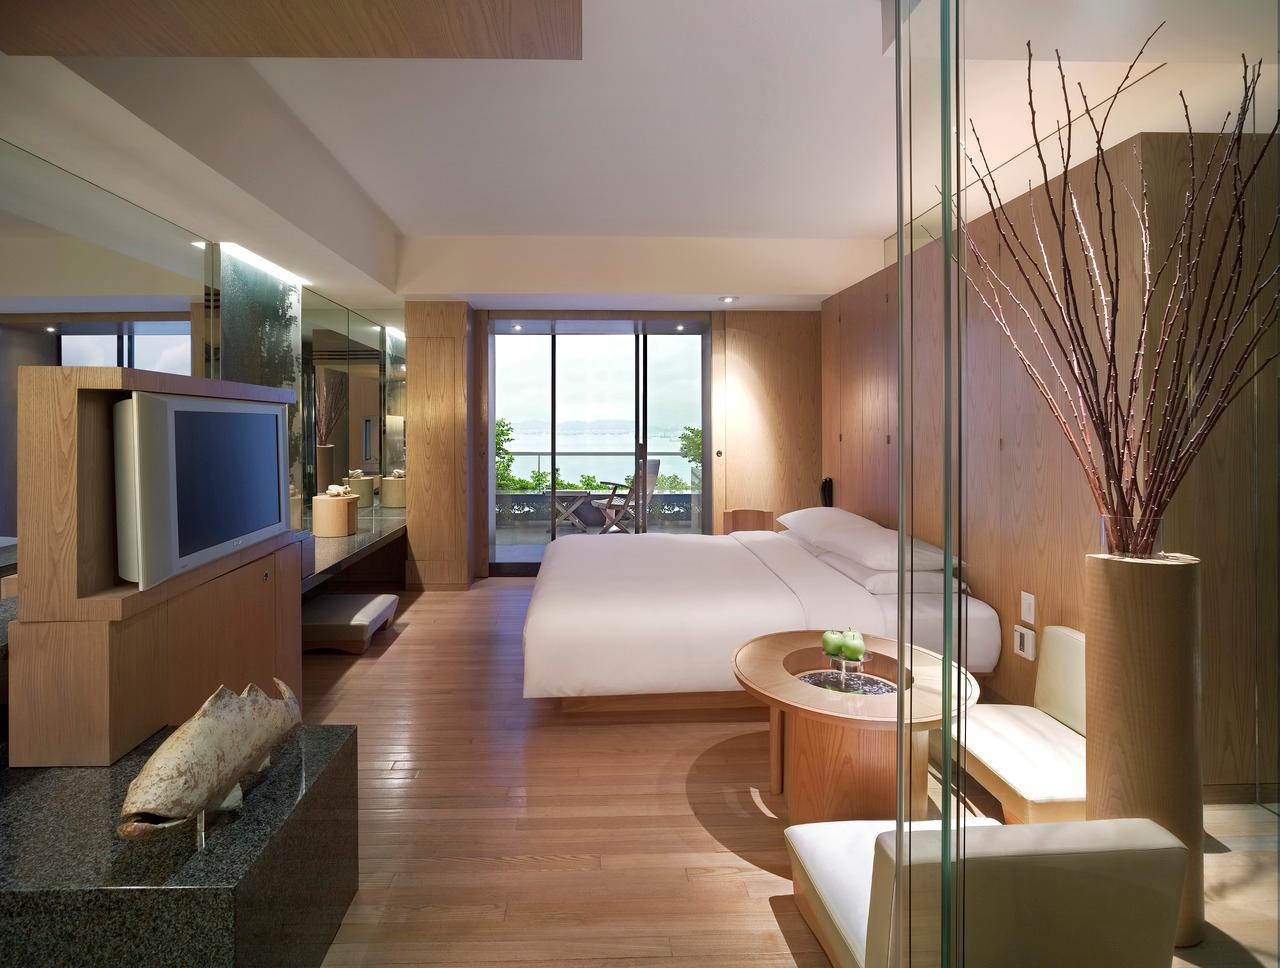 Grand Hyatt Plateau Room with Terrace